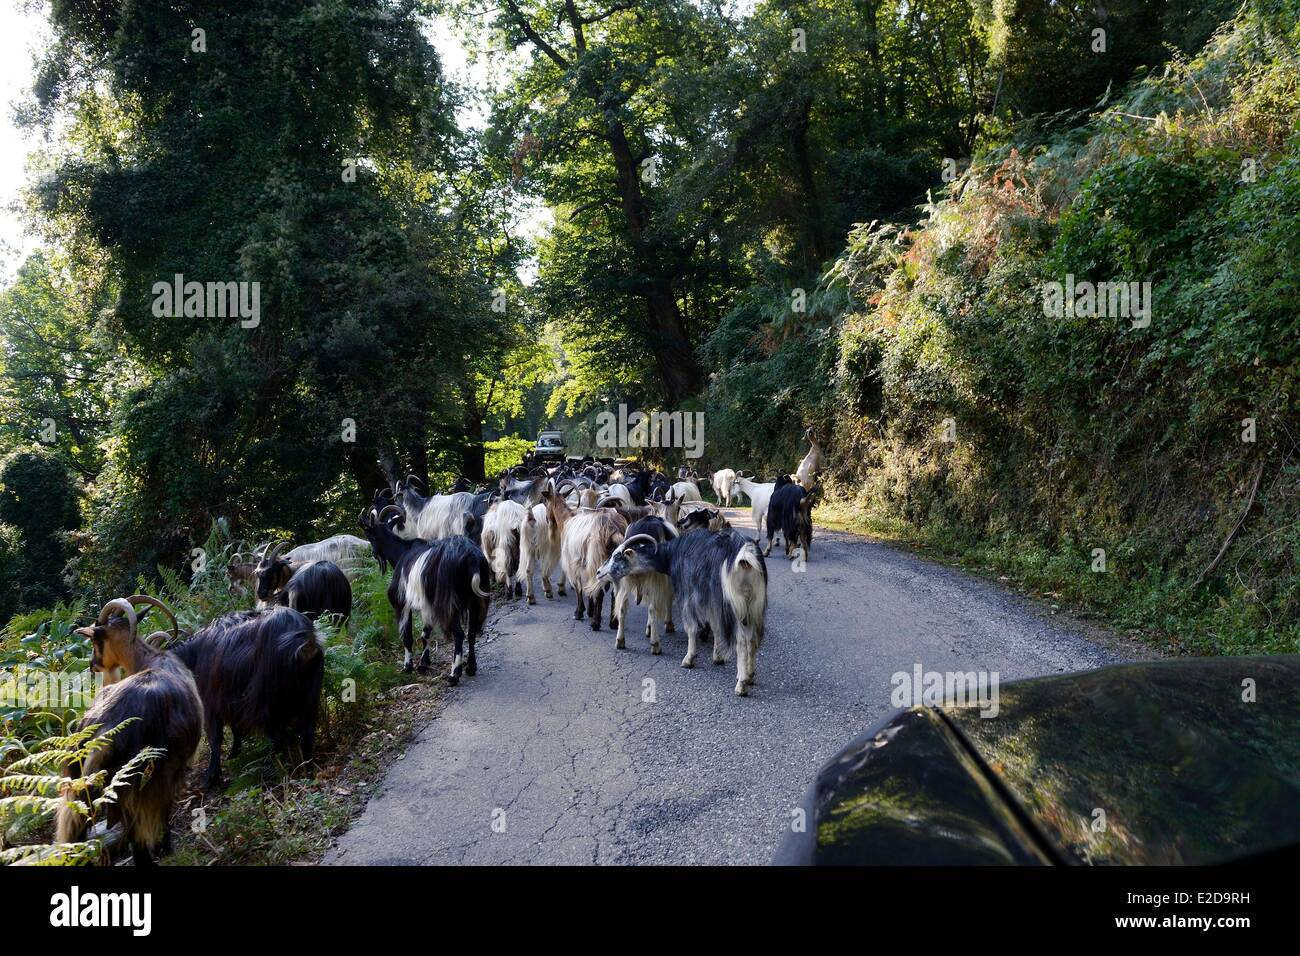 France, Haute Corse, herd of goats on a road of Castagniccia - Stock Image